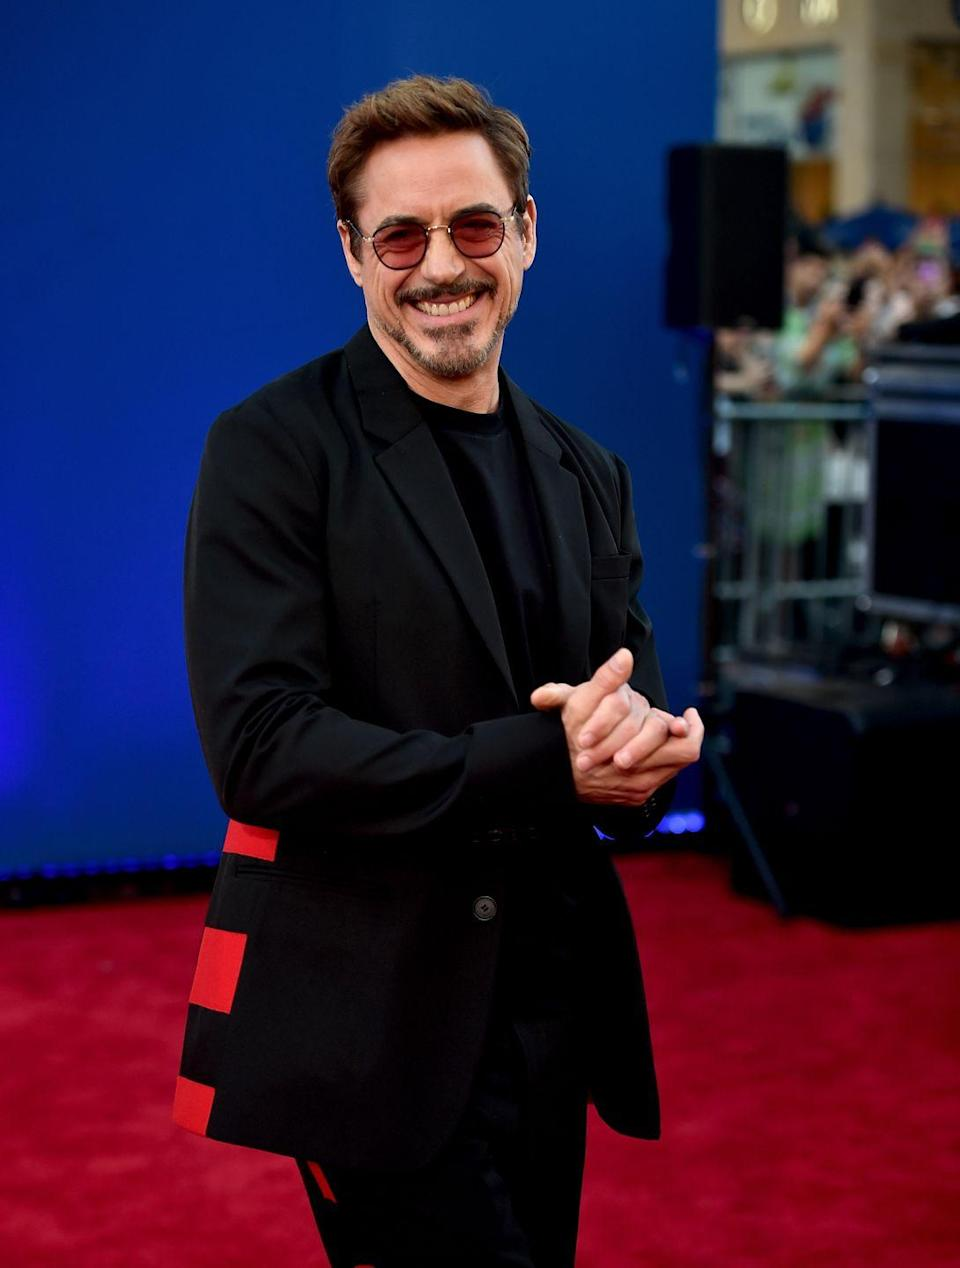 "<p>In 2008, Robert was cast as the lead in <em>Iron Man, </em>which has led to many Marvel movies over the last decade. The following year, the actor appeared as the fast-talking Sherlock Holmes, for which he <a href=""https://www.imdb.com/name/nm0000375/"" rel=""nofollow noopener"" target=""_blank"" data-ylk=""slk:won a Golden Globe"" class=""link rapid-noclick-resp"">won a Golden Globe</a>.</p>"